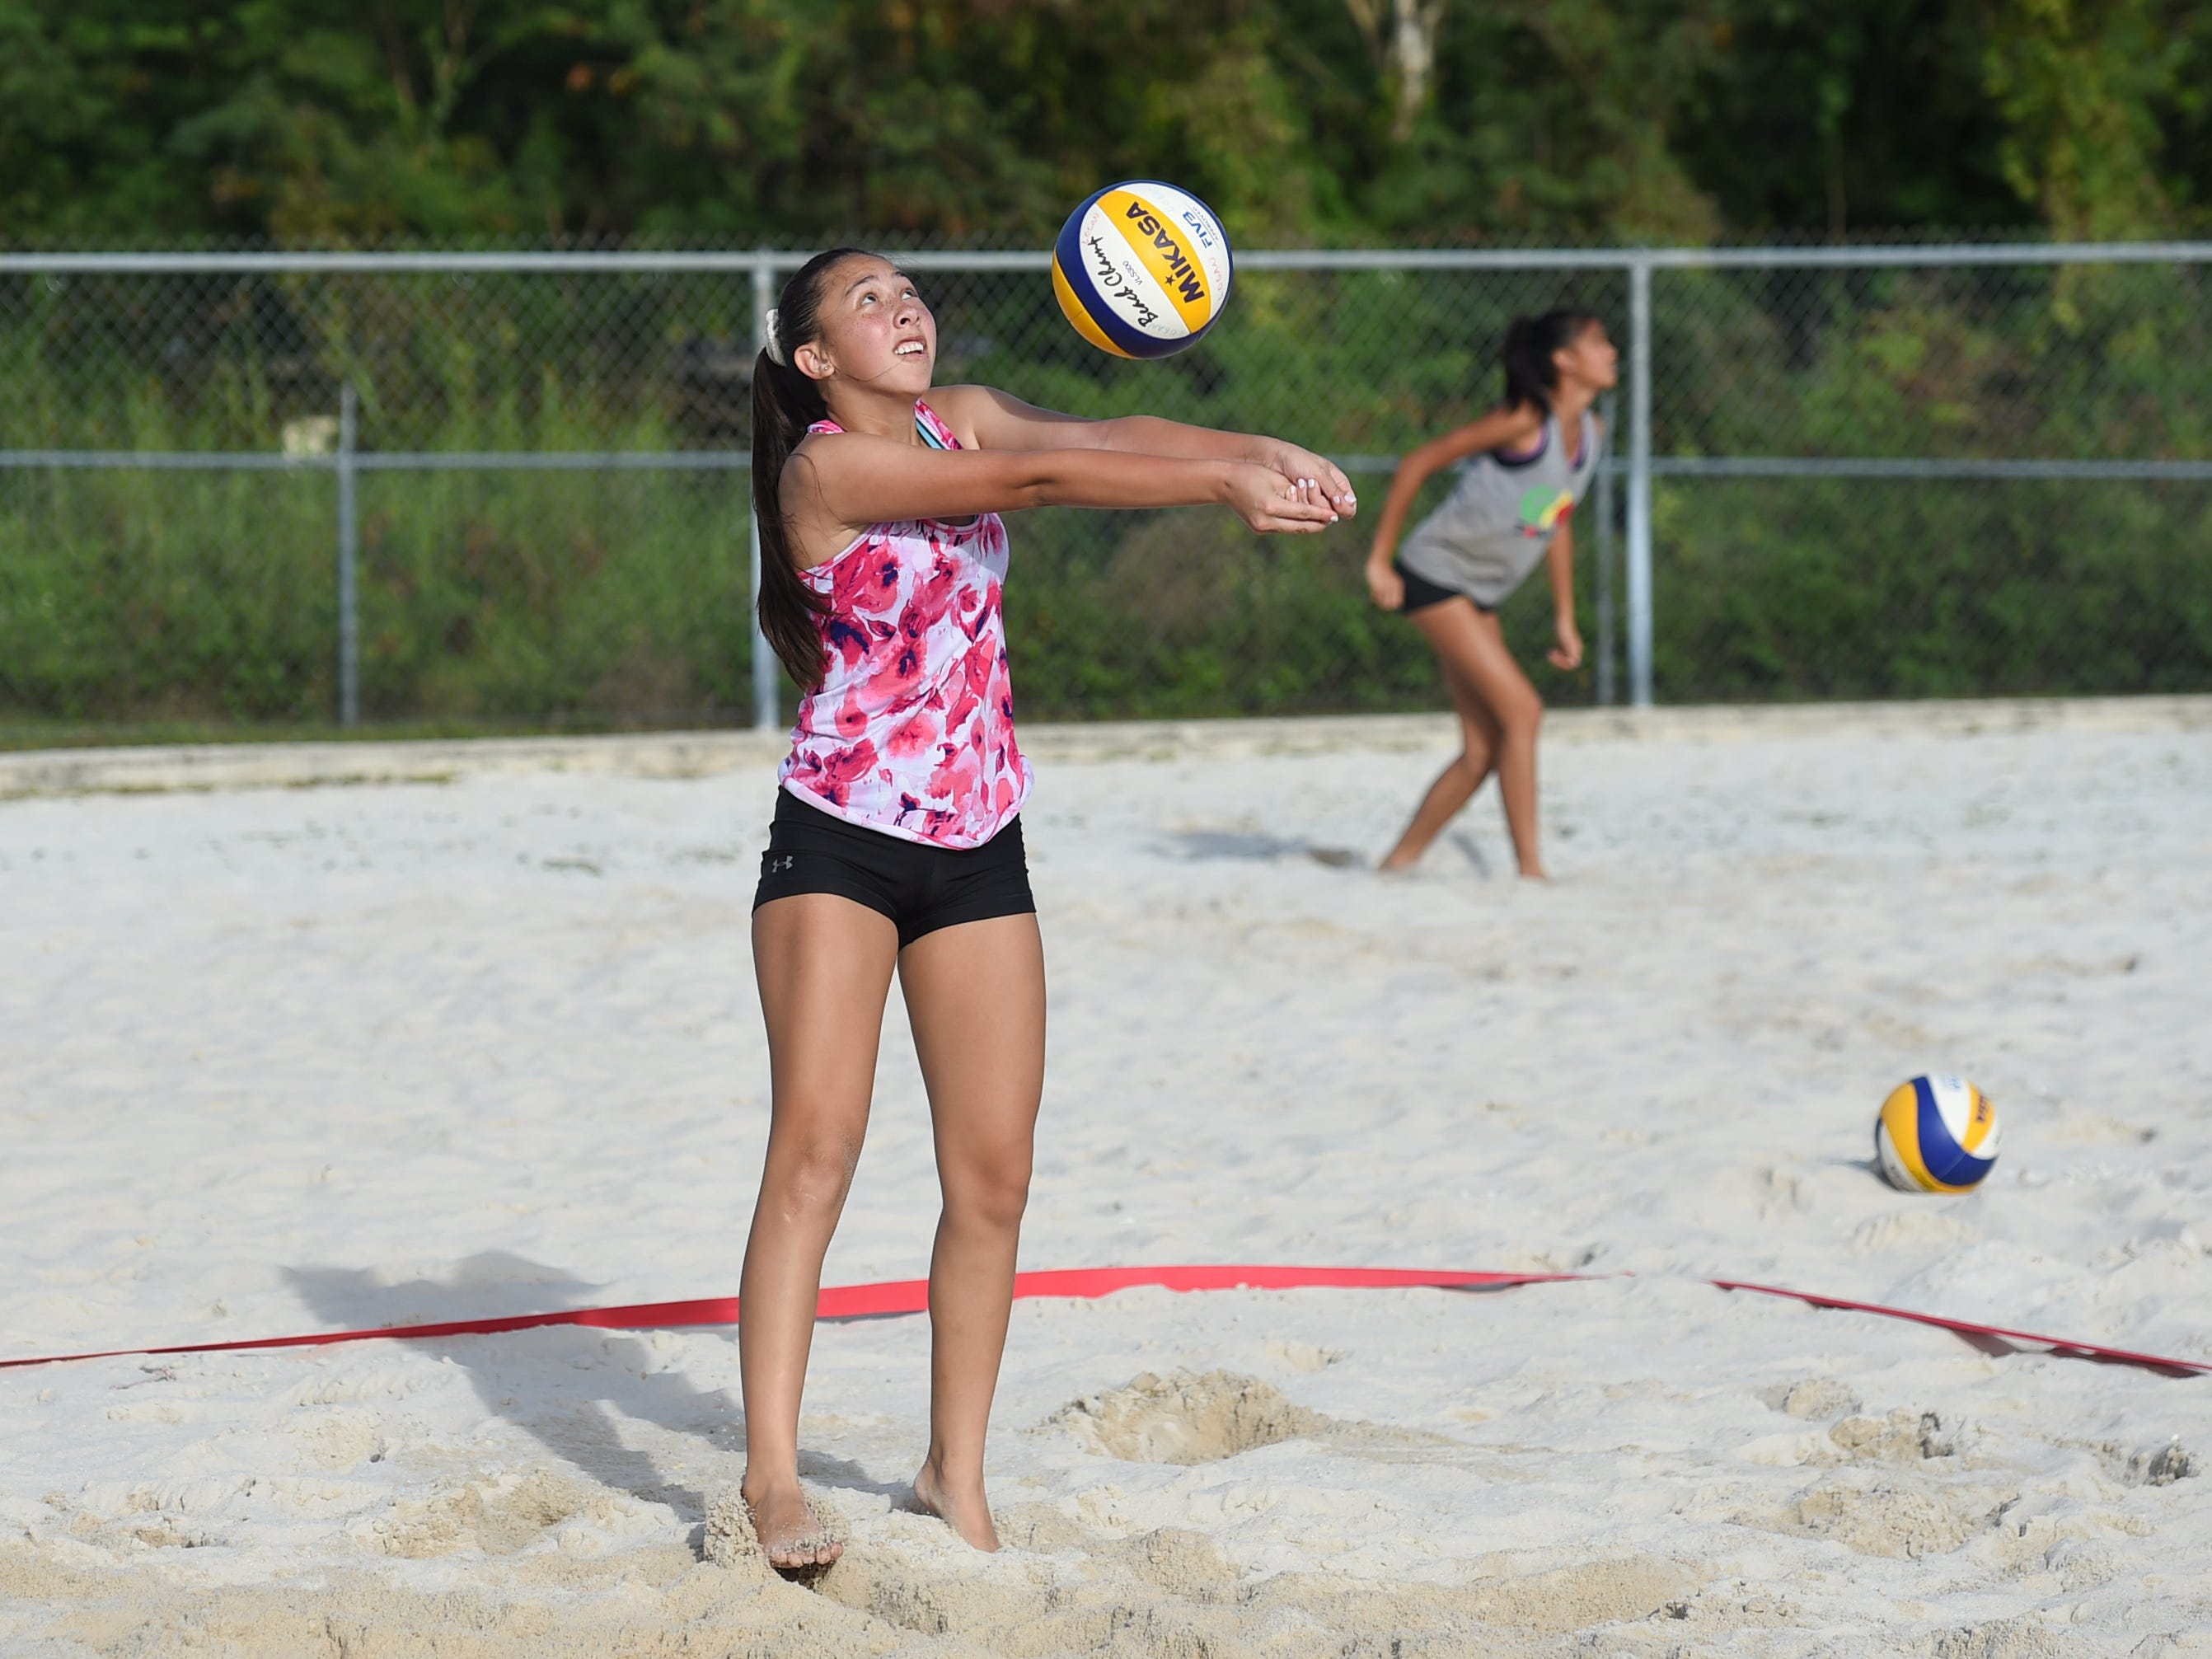 St. John's player Elisabeth Errett keeps the ball up during the IIAAG Beach Volleyball third place game at the Guam Football Association National Training Center in Dededo, March 12, 2019.